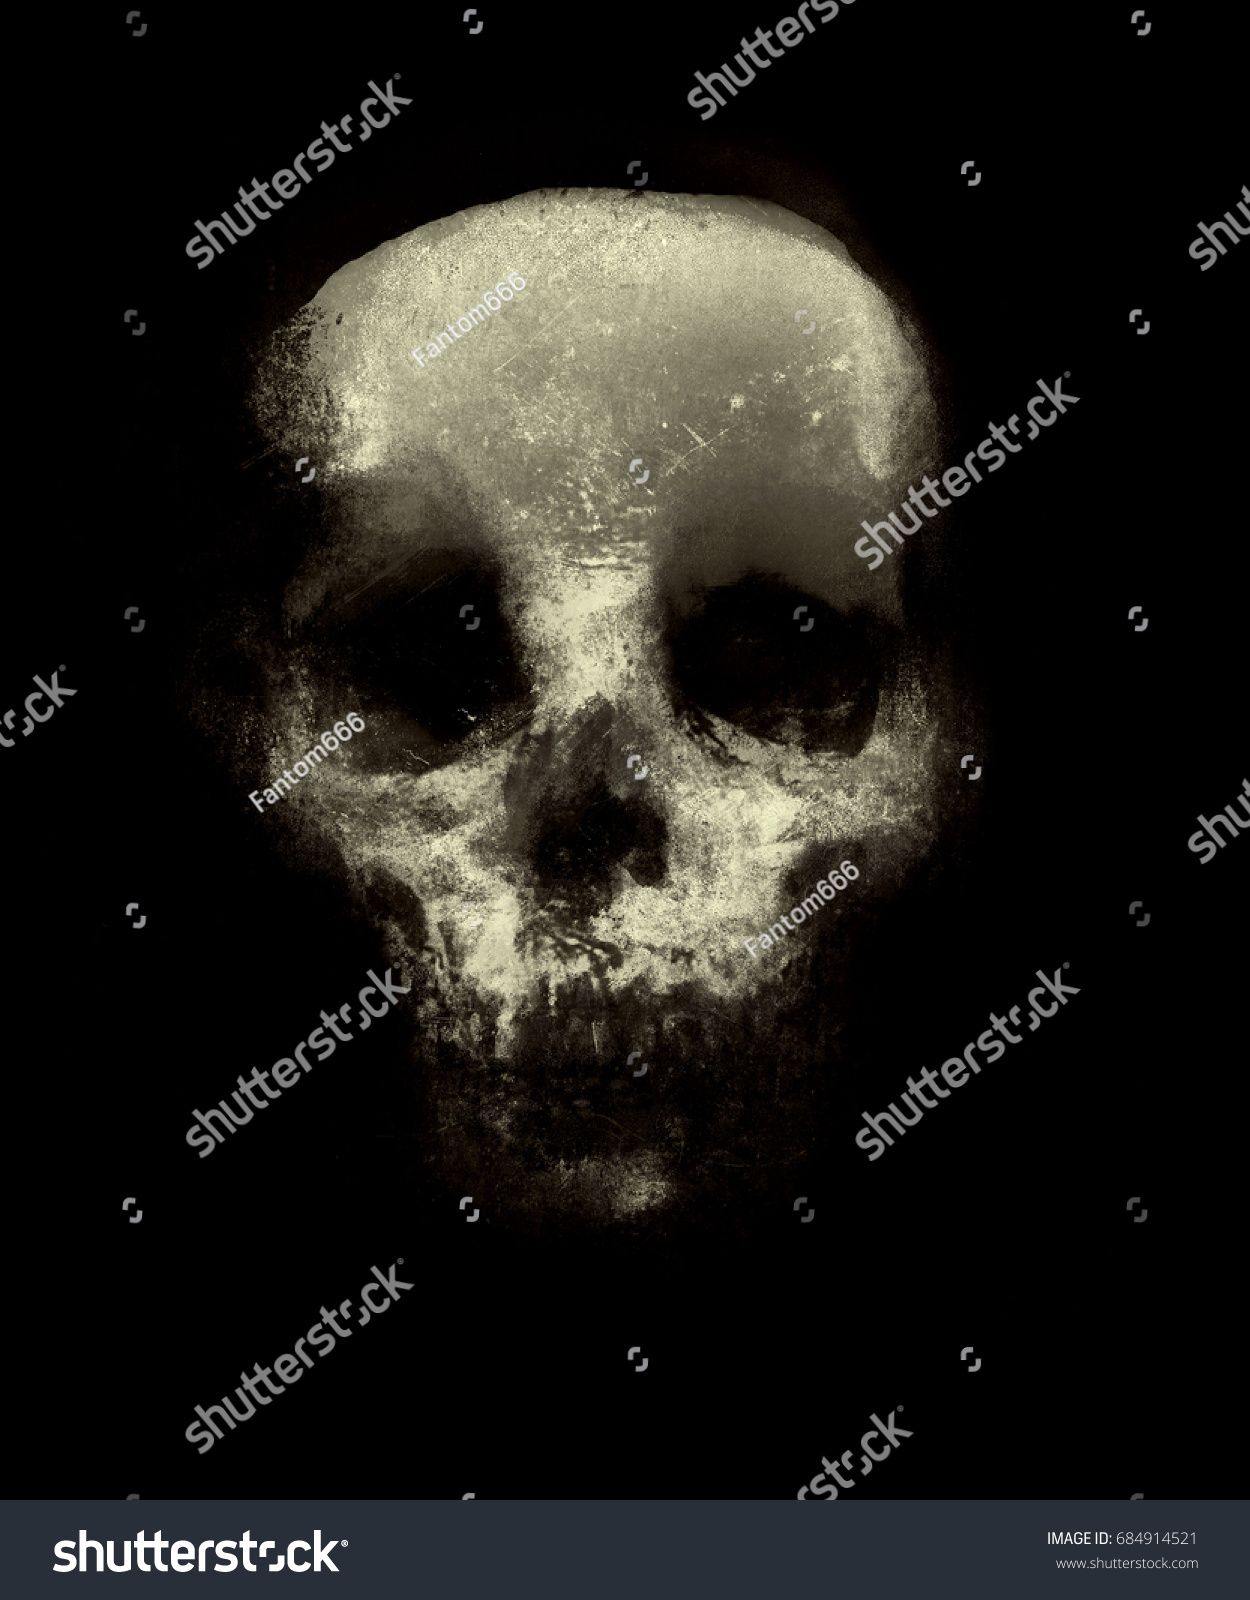 Wonderful Wallpaper Halloween Grunge - stock-photo-scary-grunge-wallpaper-halloween-background-with-spooky-skull-design-for-t-shirt-print-with-684914521  Pictures_232278.jpg